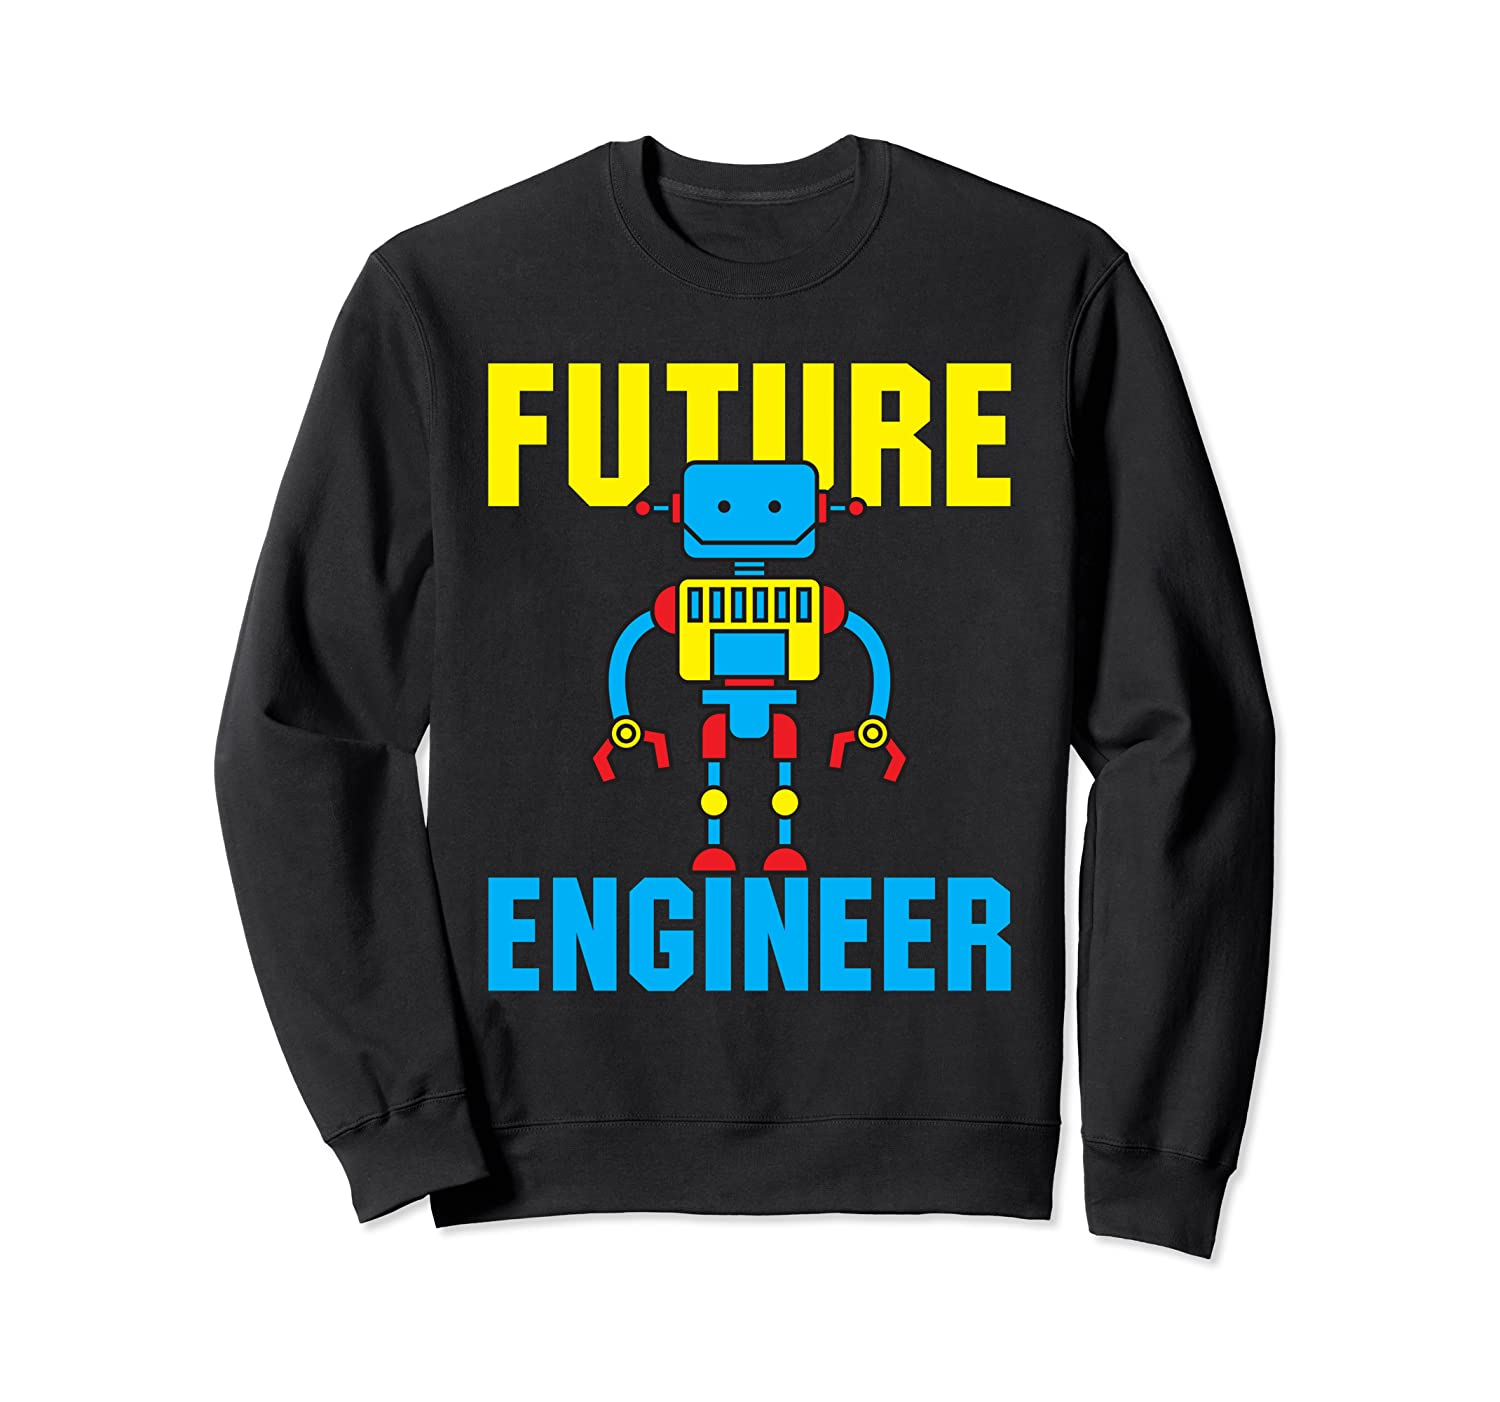 Amazon.com: Future Engineer Funny Cute Futuristic Robot ...